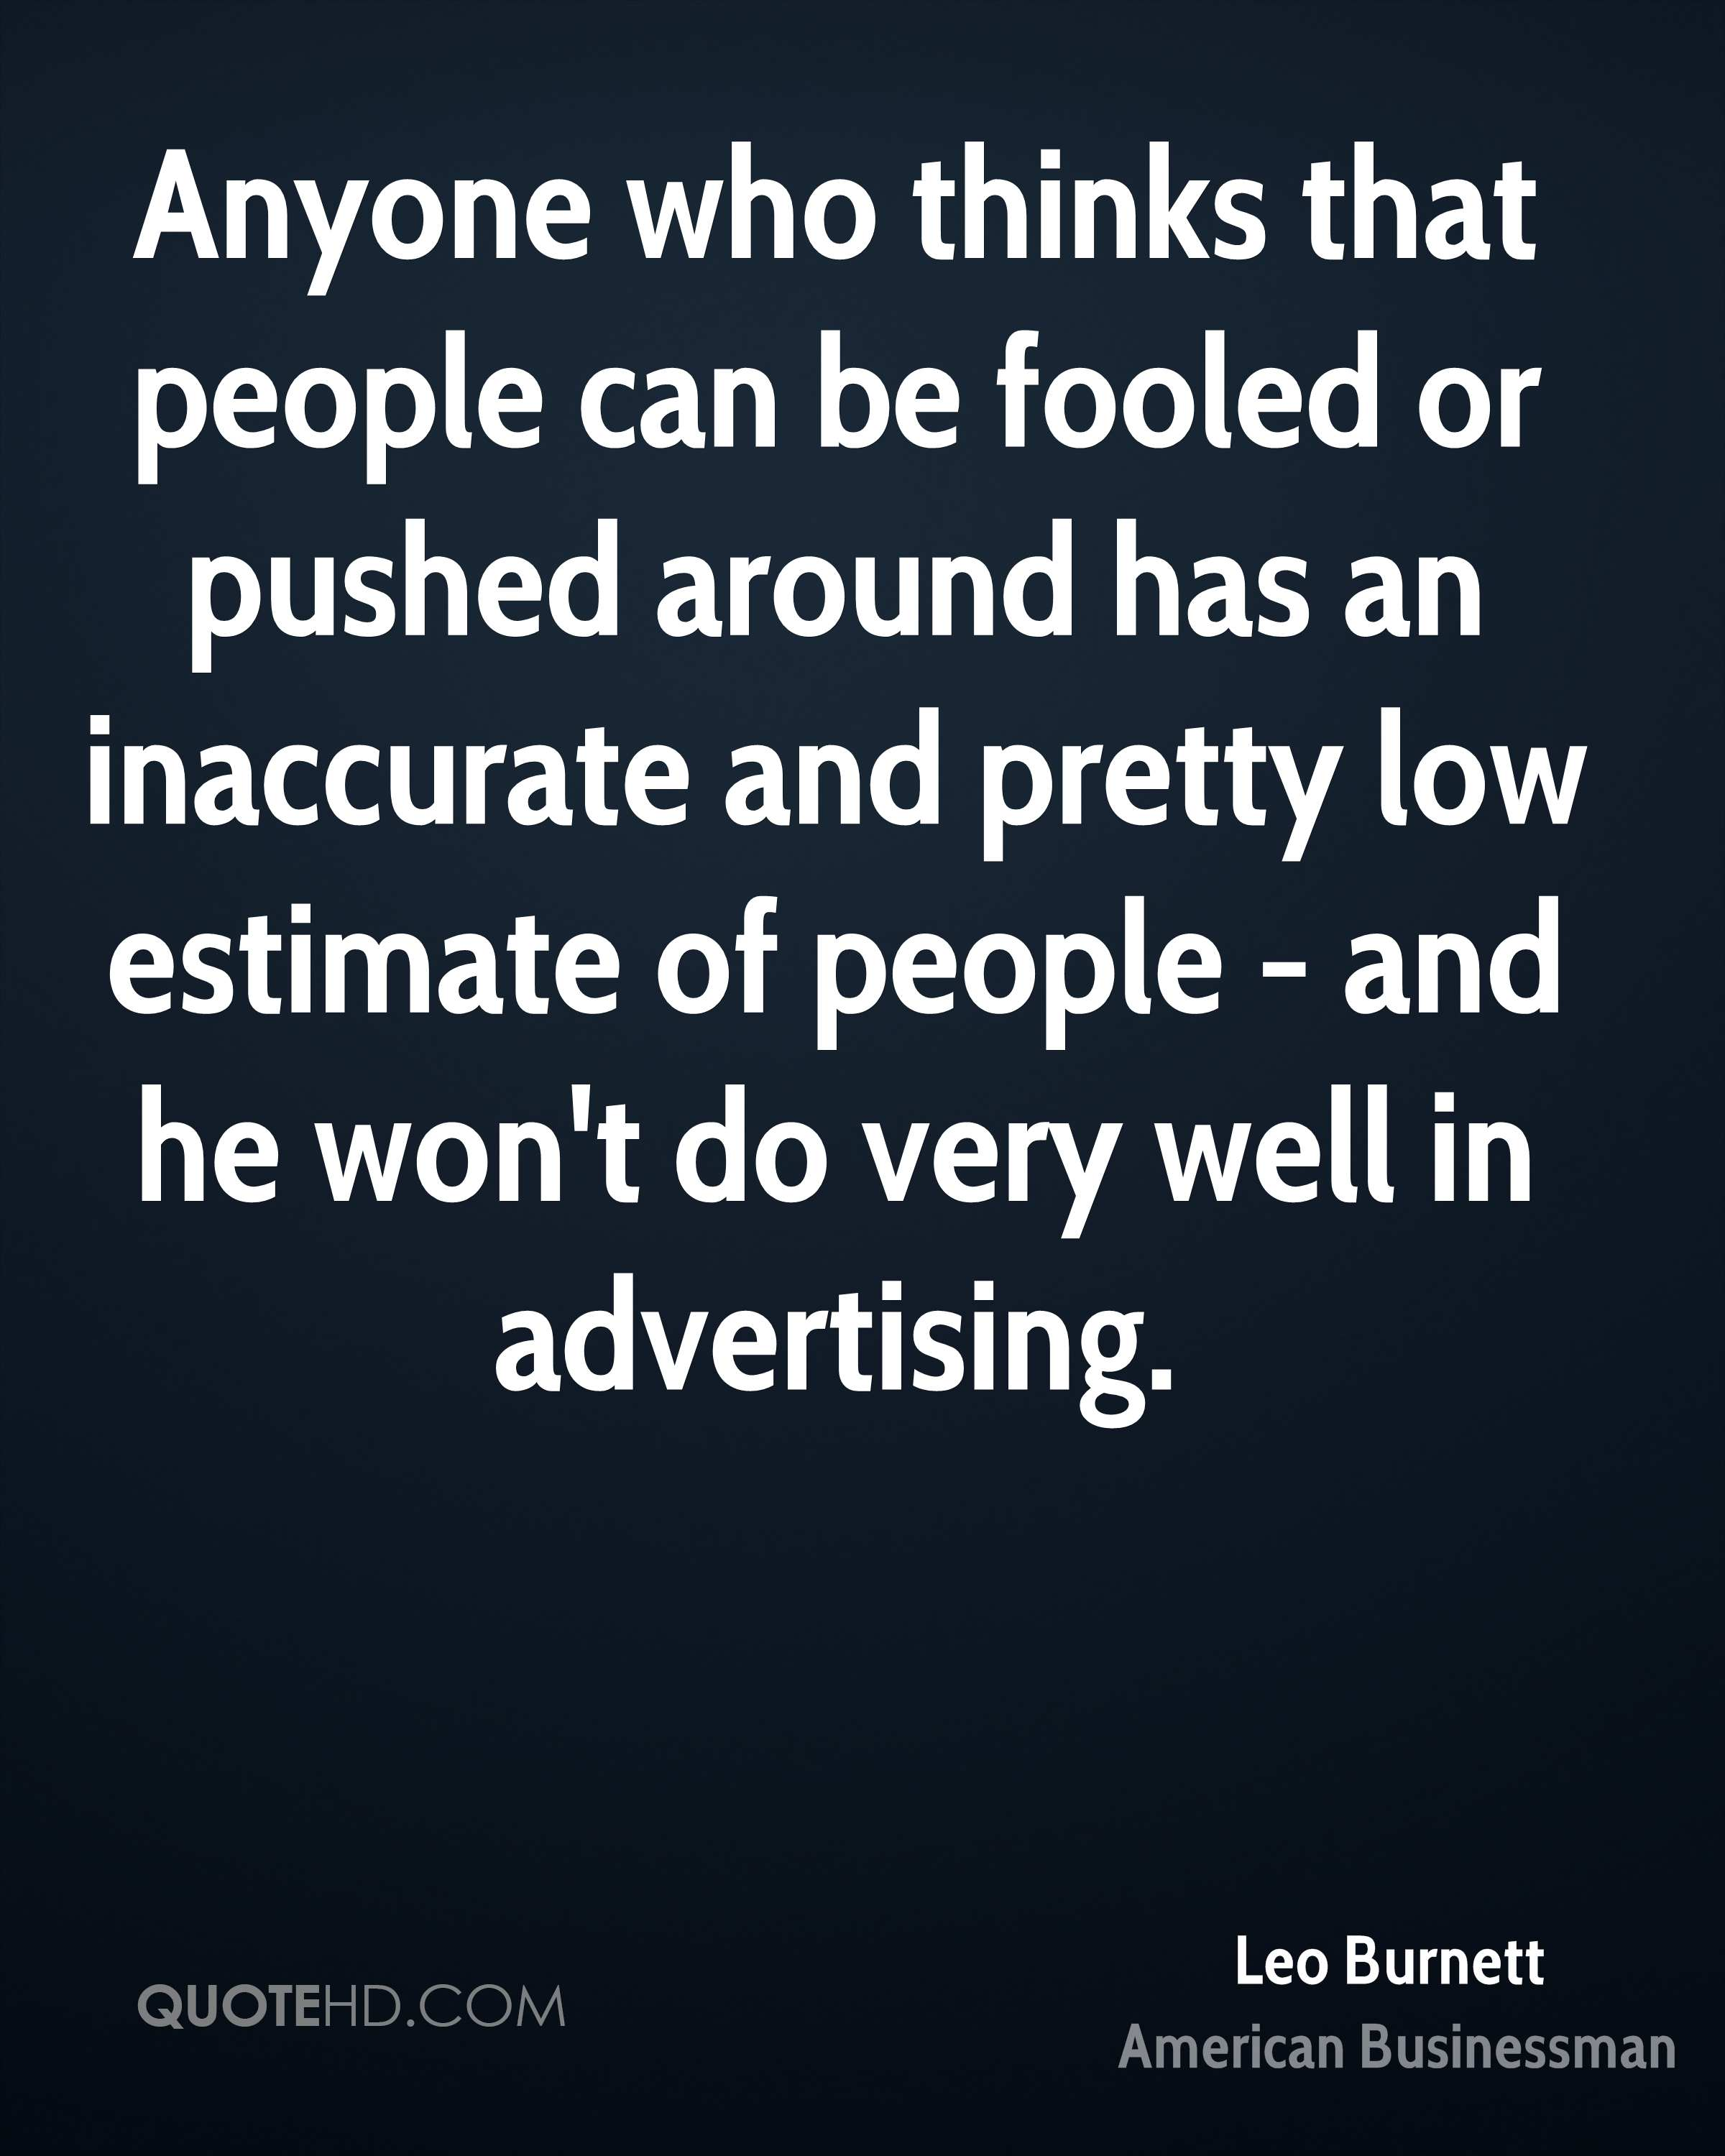 Anyone who thinks that people can be fooled or pushed around has an inaccurate and pretty low estimate of people - and he won't do very well in advertising.